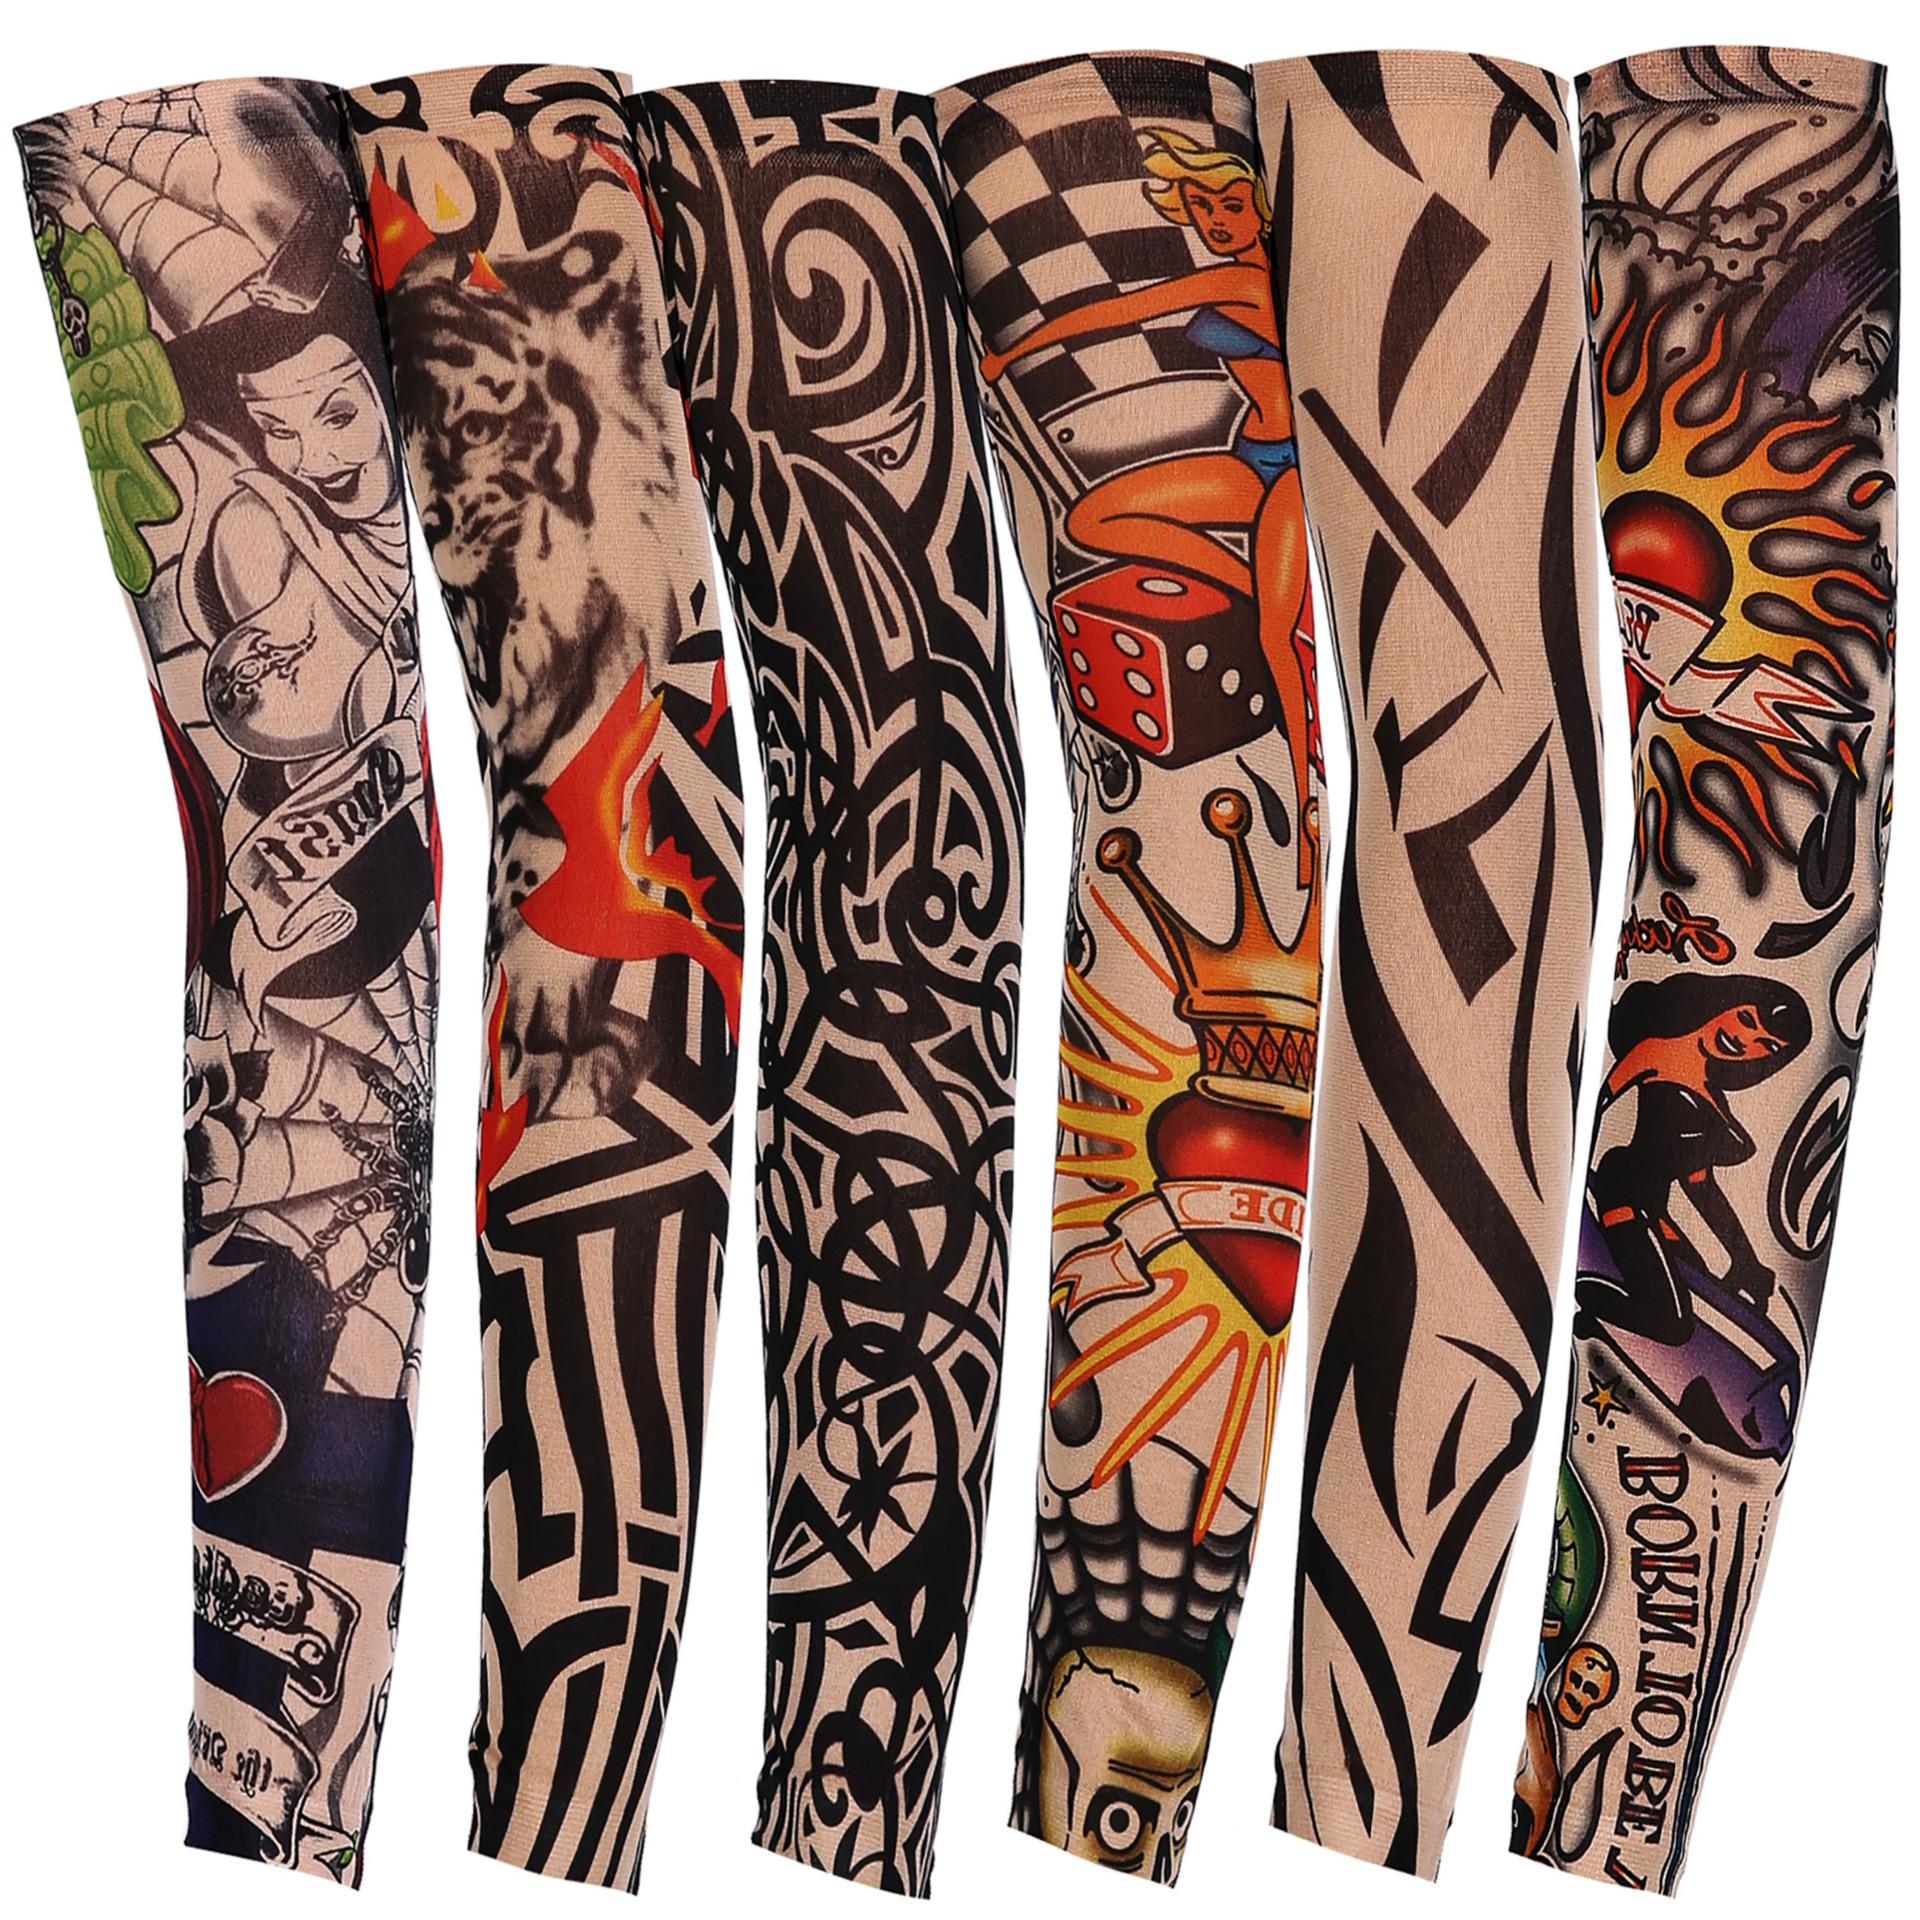 1Pcs Trendy Men Women New high Elastic Fake Temporary Tattoo Sleeve Designs Summer sunscreen Body Arm Warmers 2018